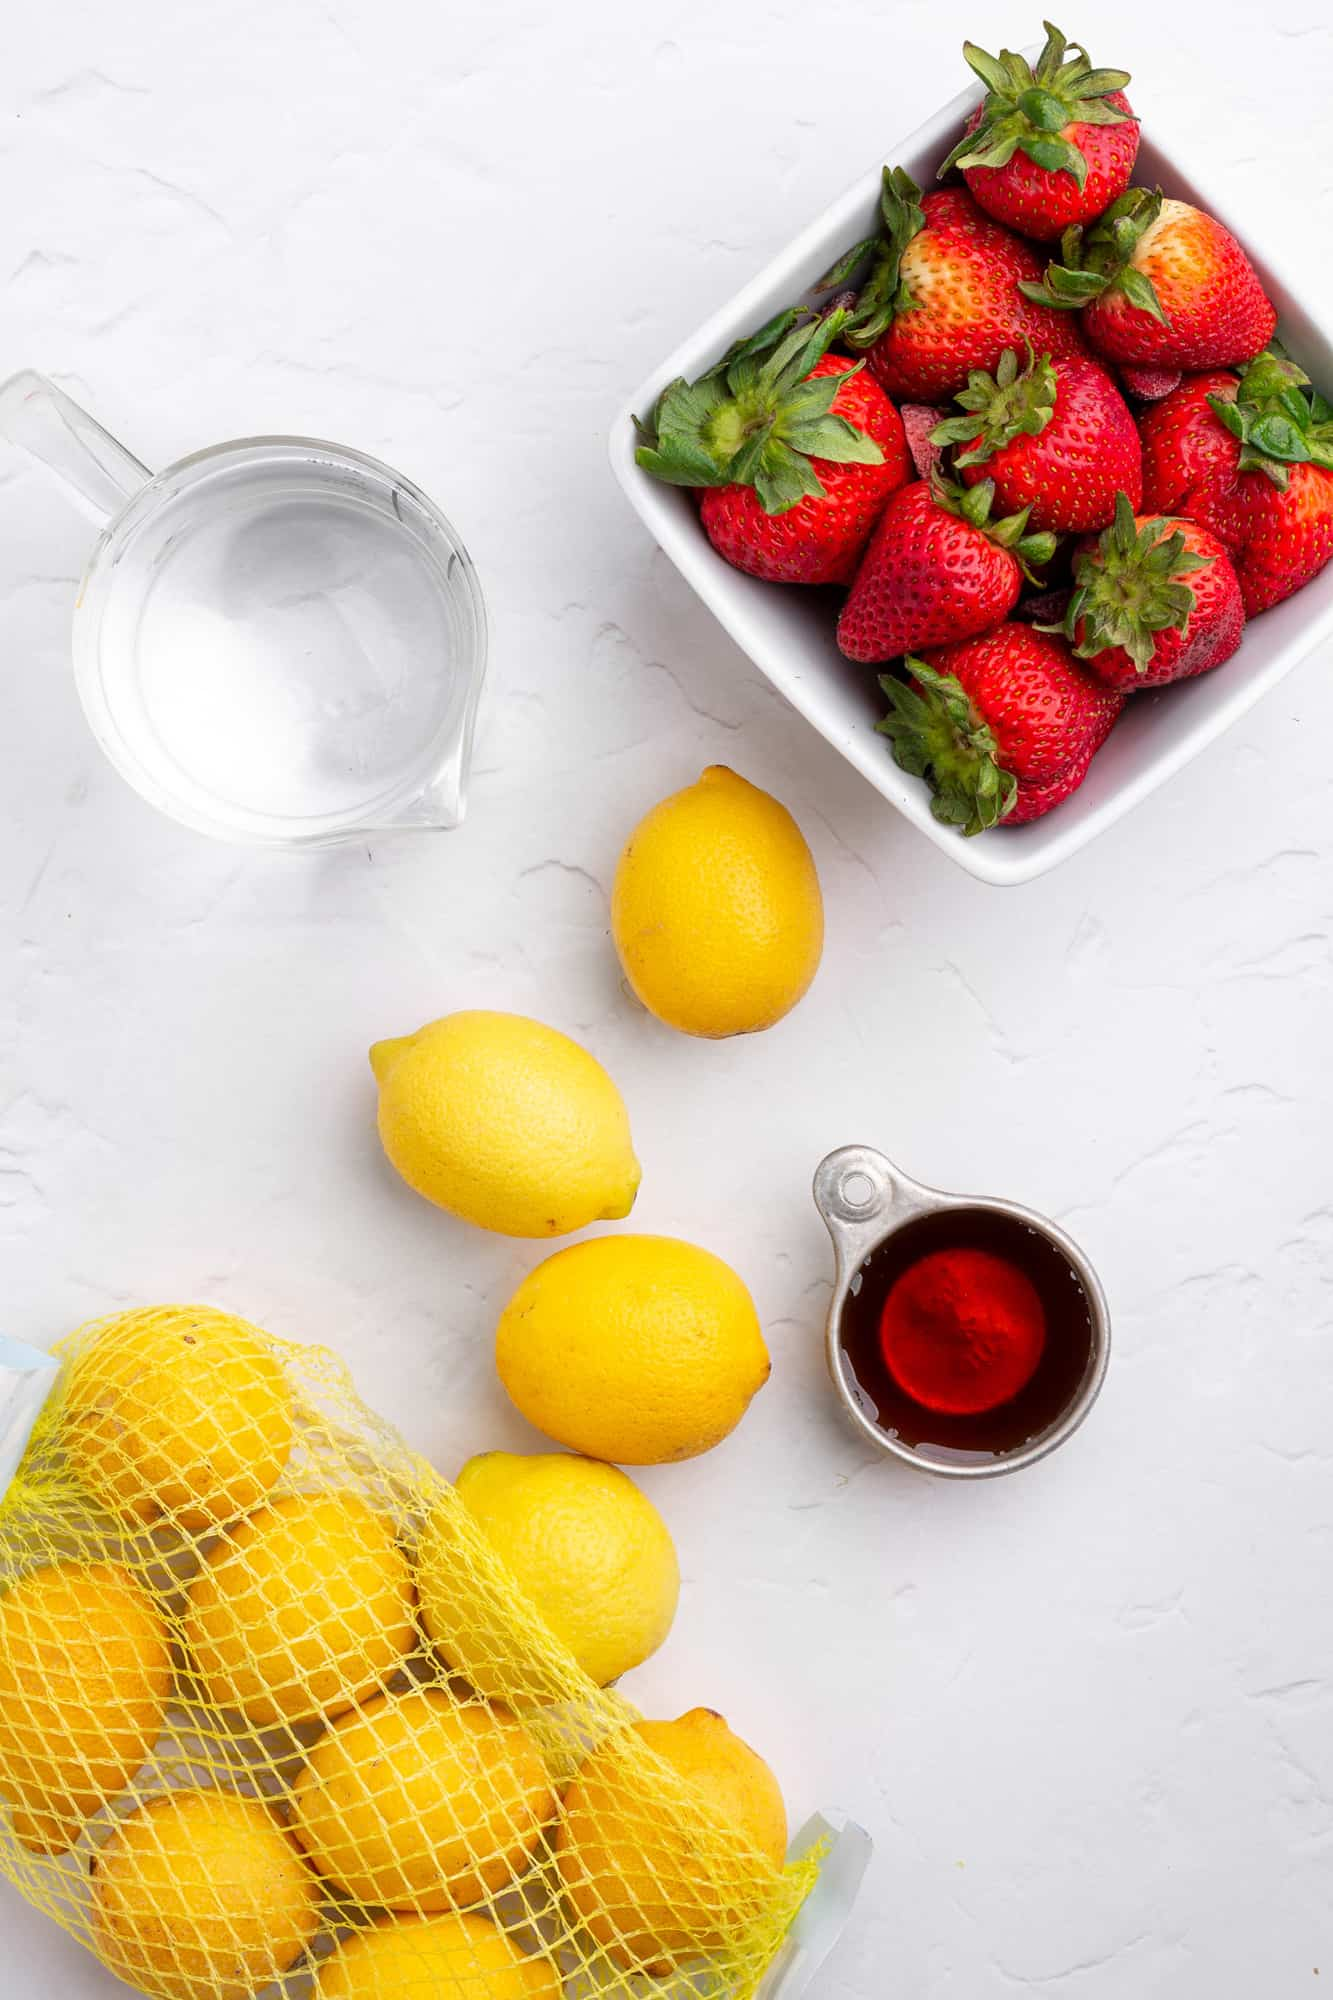 ingredients to make healthy strawberry lemonade popsicles